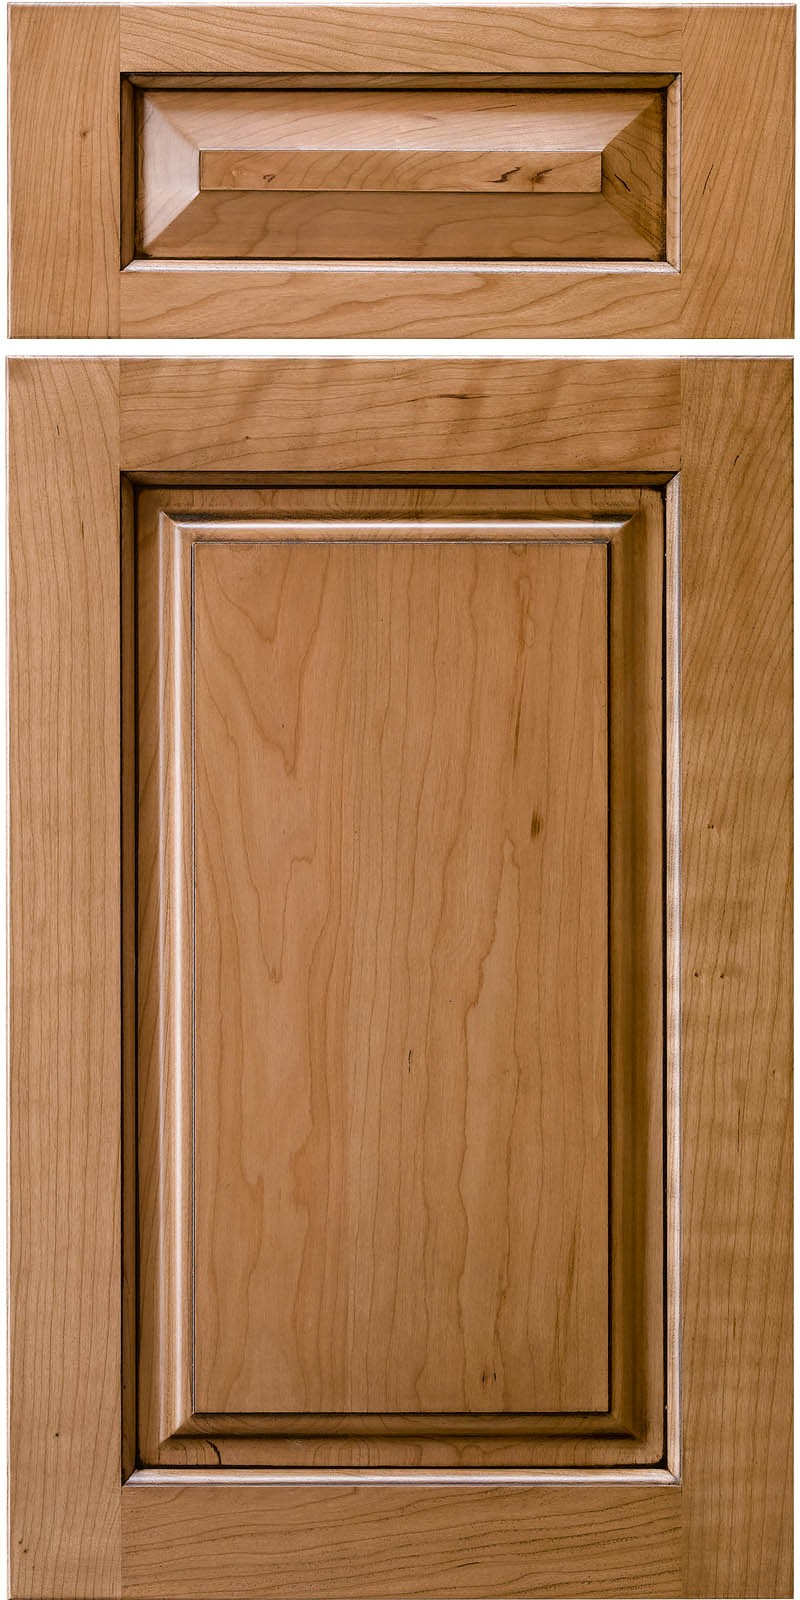 Crp10 Solid Wood Materials Cabinet Doors Drawer Fronts Products